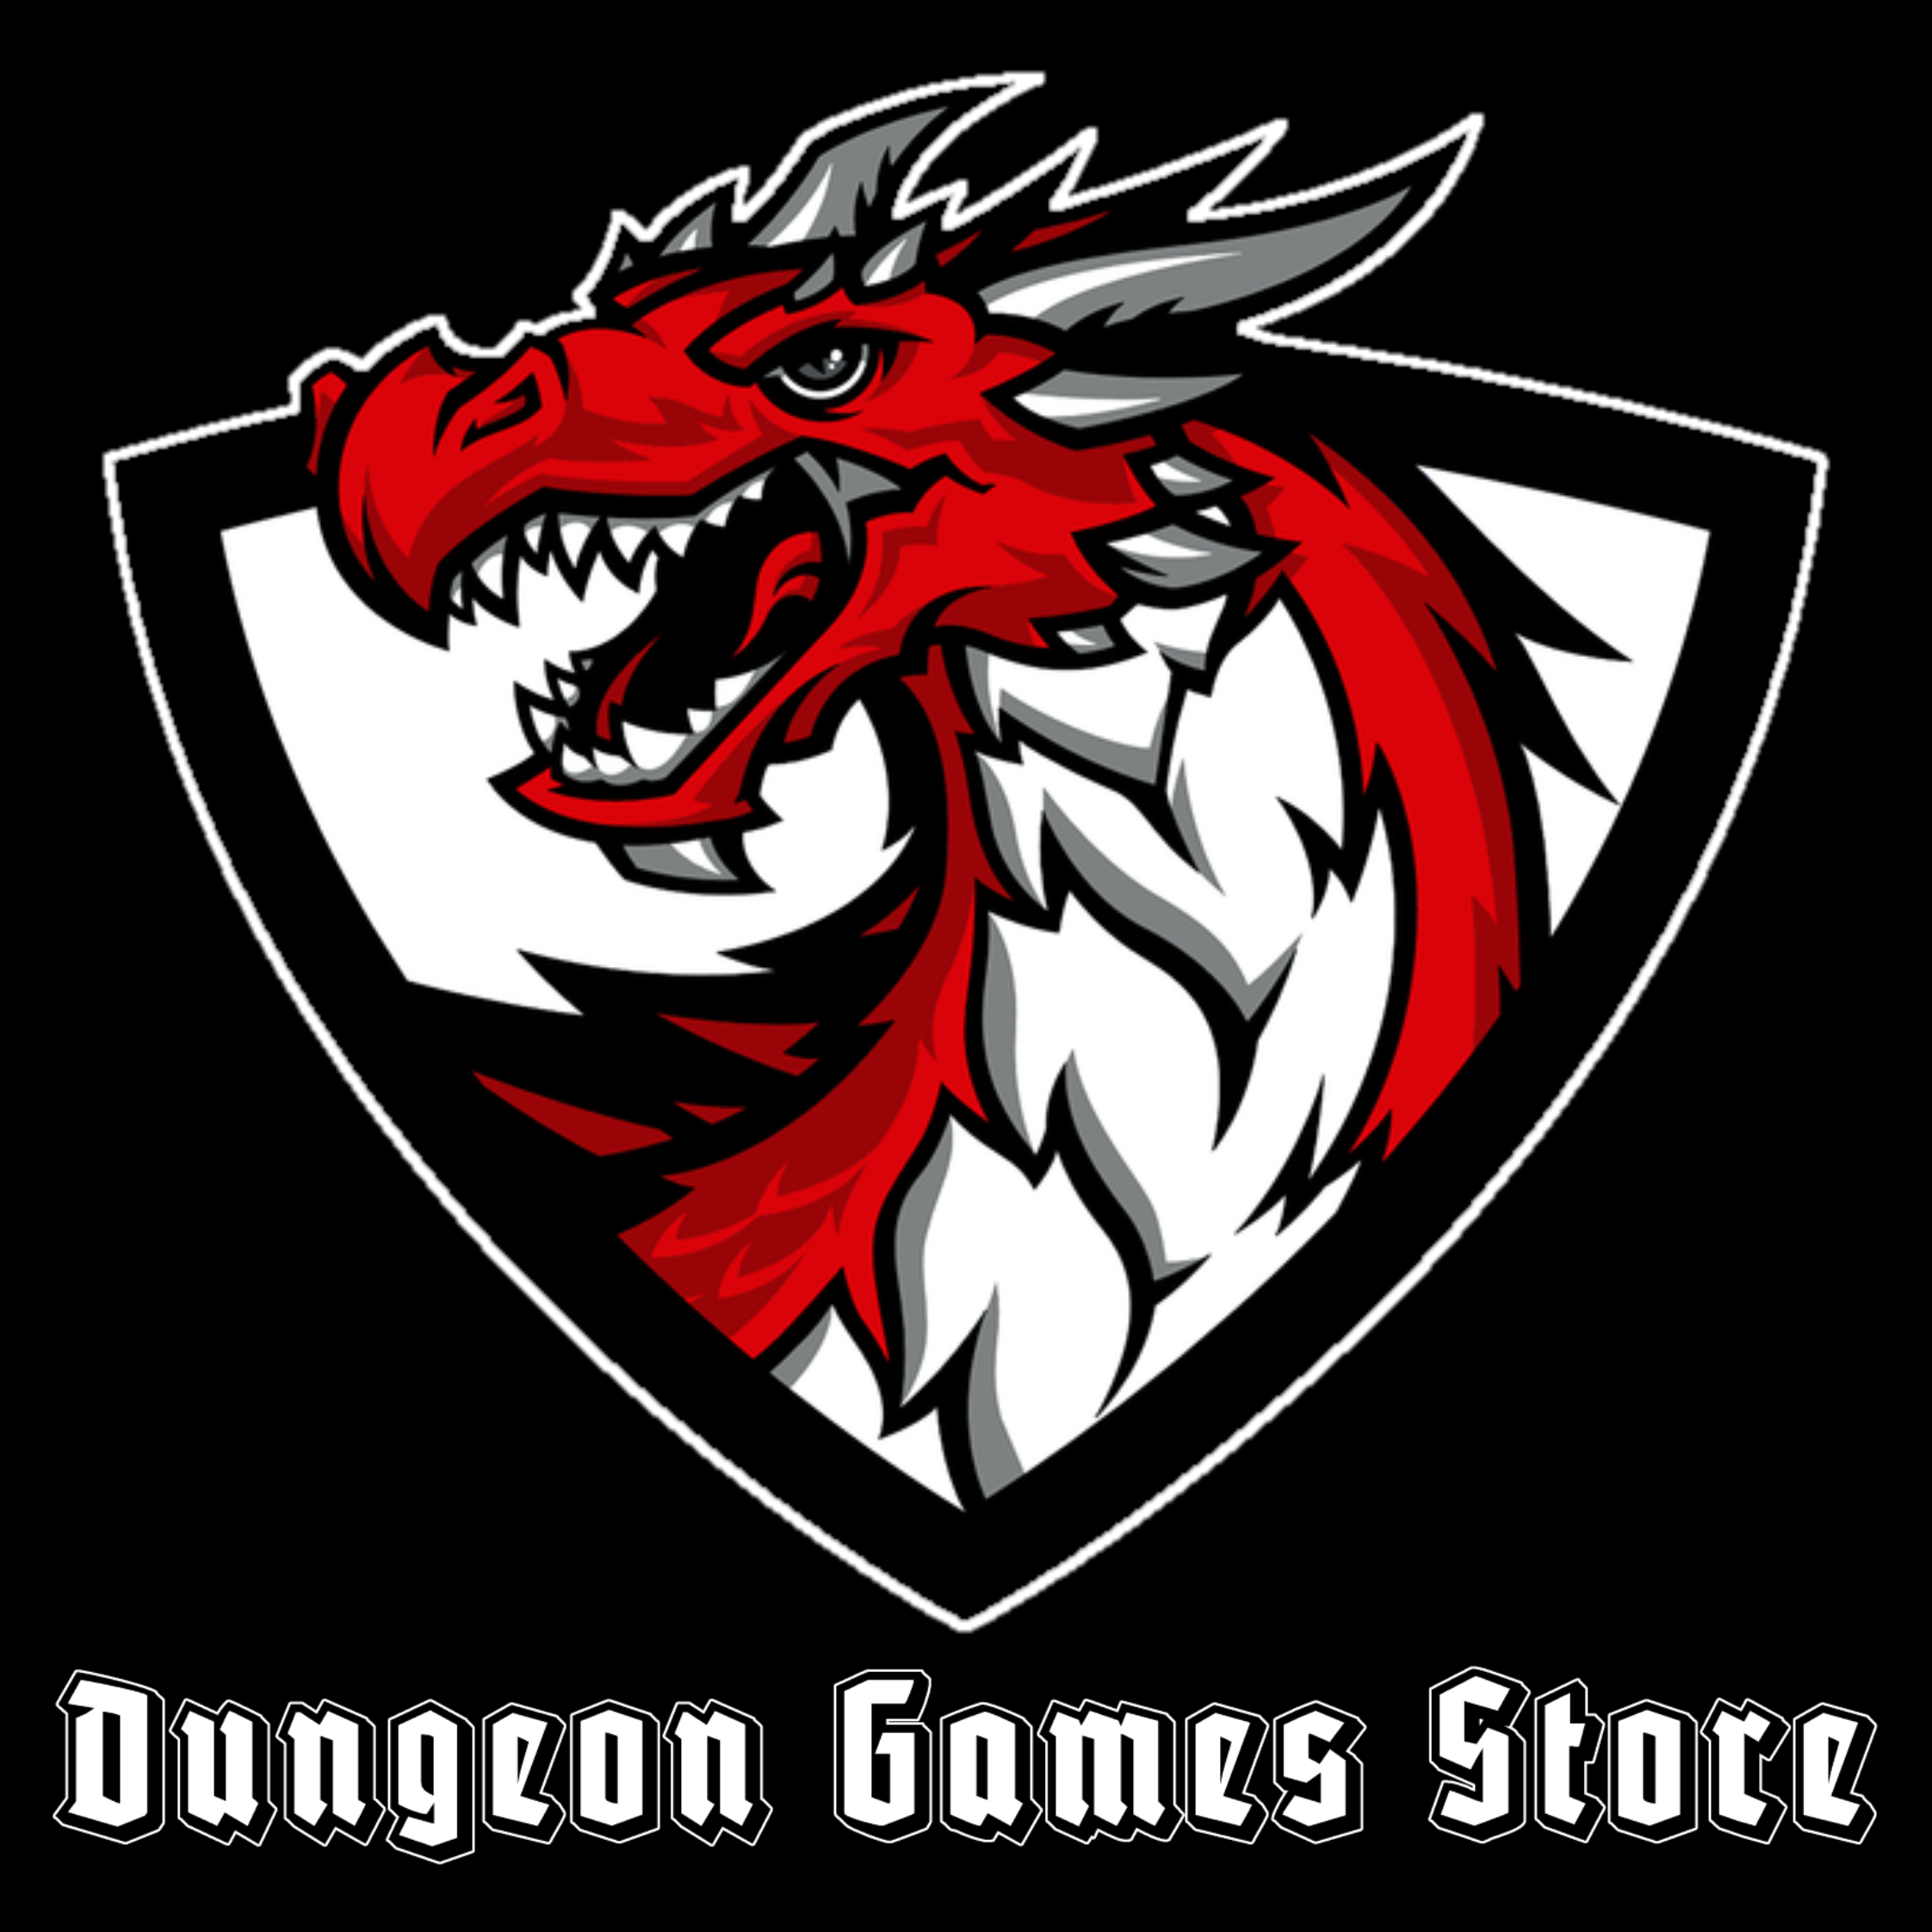 Dungeon Games Store